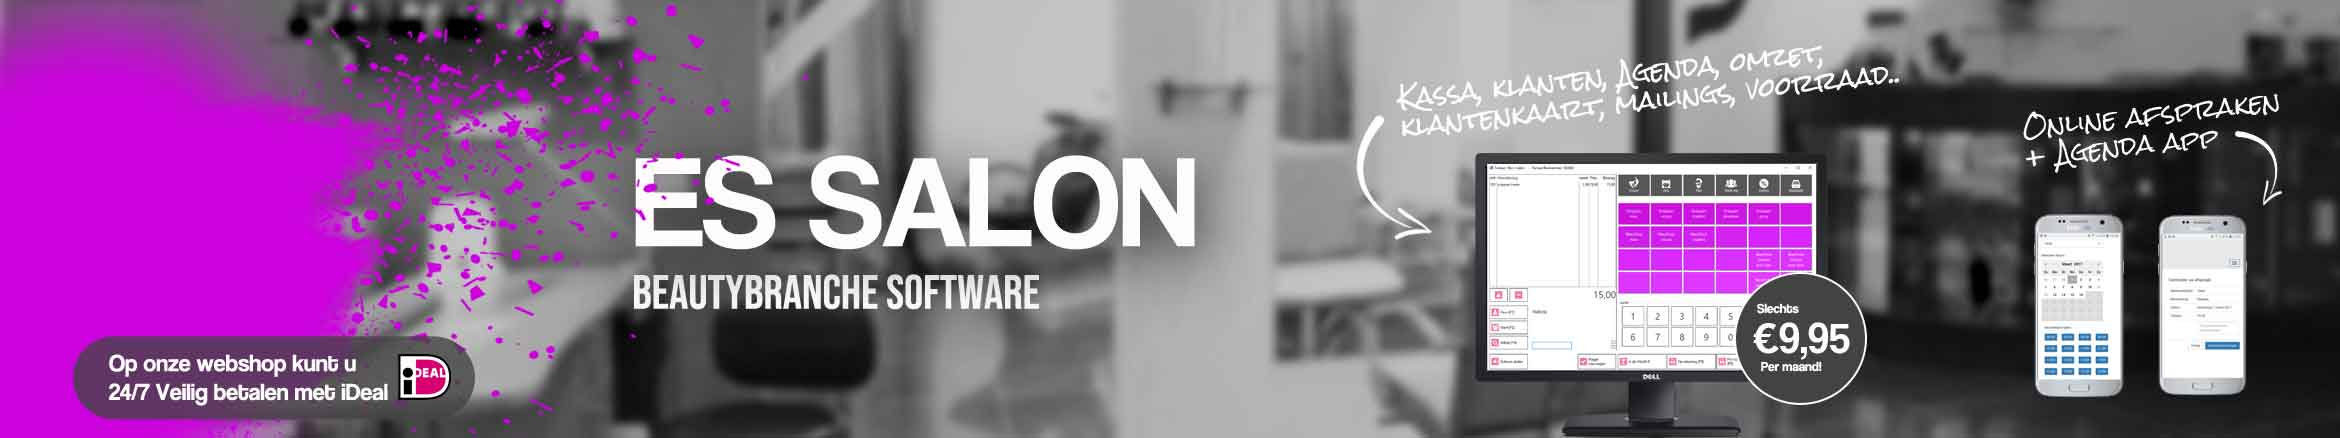 Salonsoftware, kapperssoftware, salon software kapsalon, schoonheidssalon software